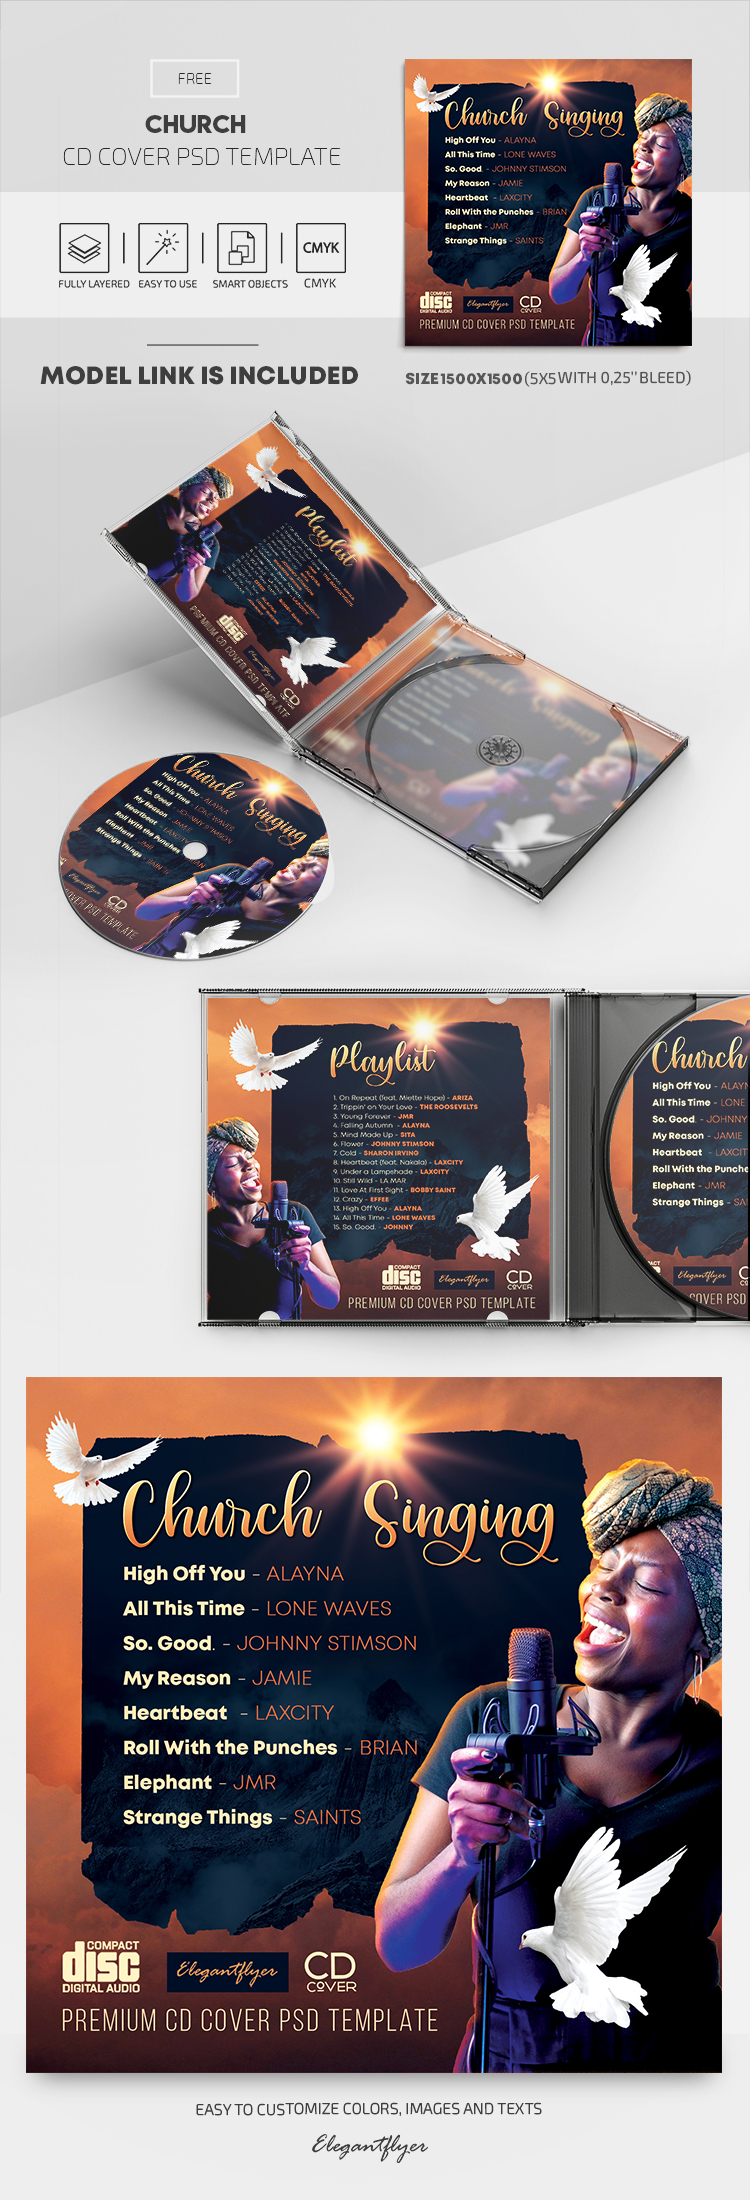 Church – Free CD Cover PSD Template